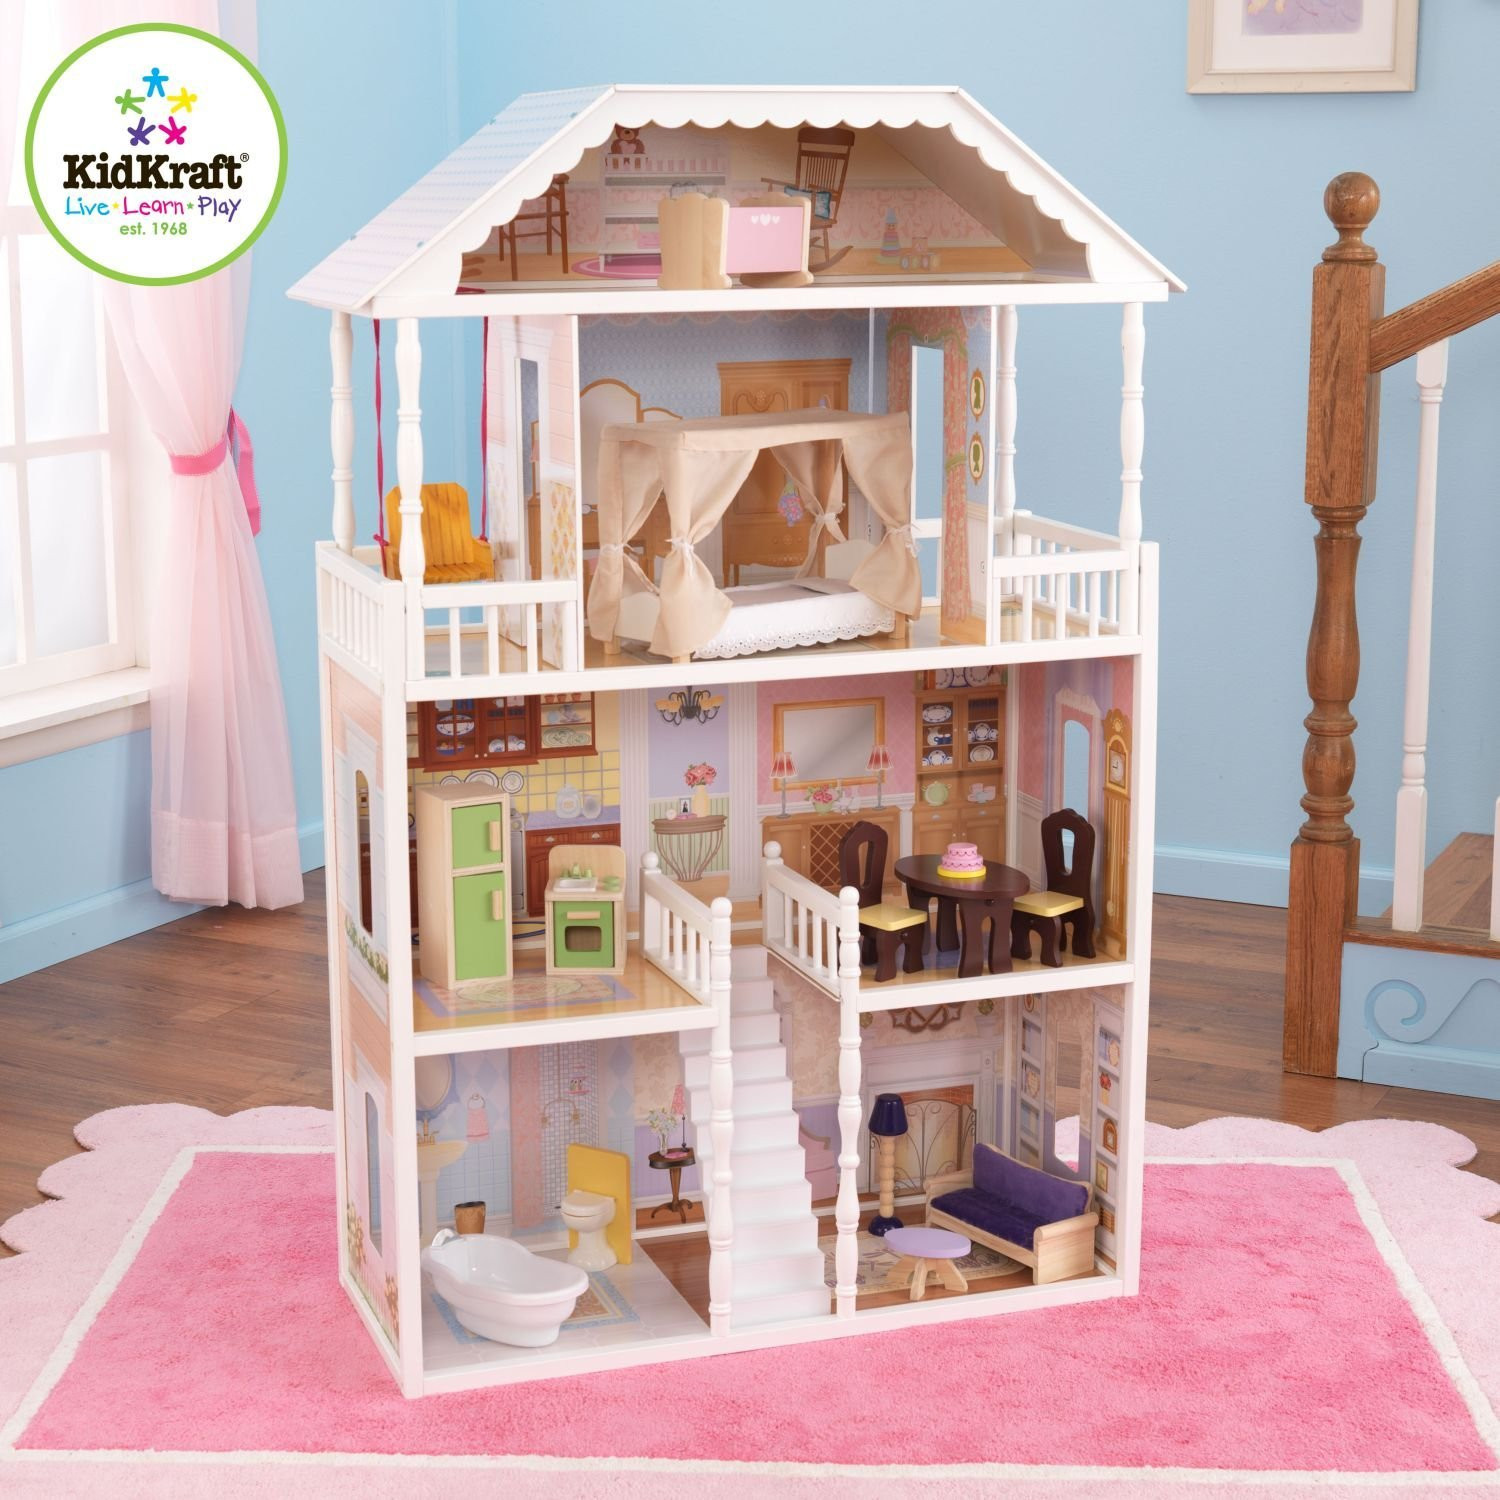 Lovely Kidkraft Majestic Mansion Dollhouse 65252 For Kids Play Room Furniture Ideas: Wonderful Kidkraft Majestic Mansion Dollhouse 65252 Made Of Wood On Pink Rug For Nursery Decor Ideas